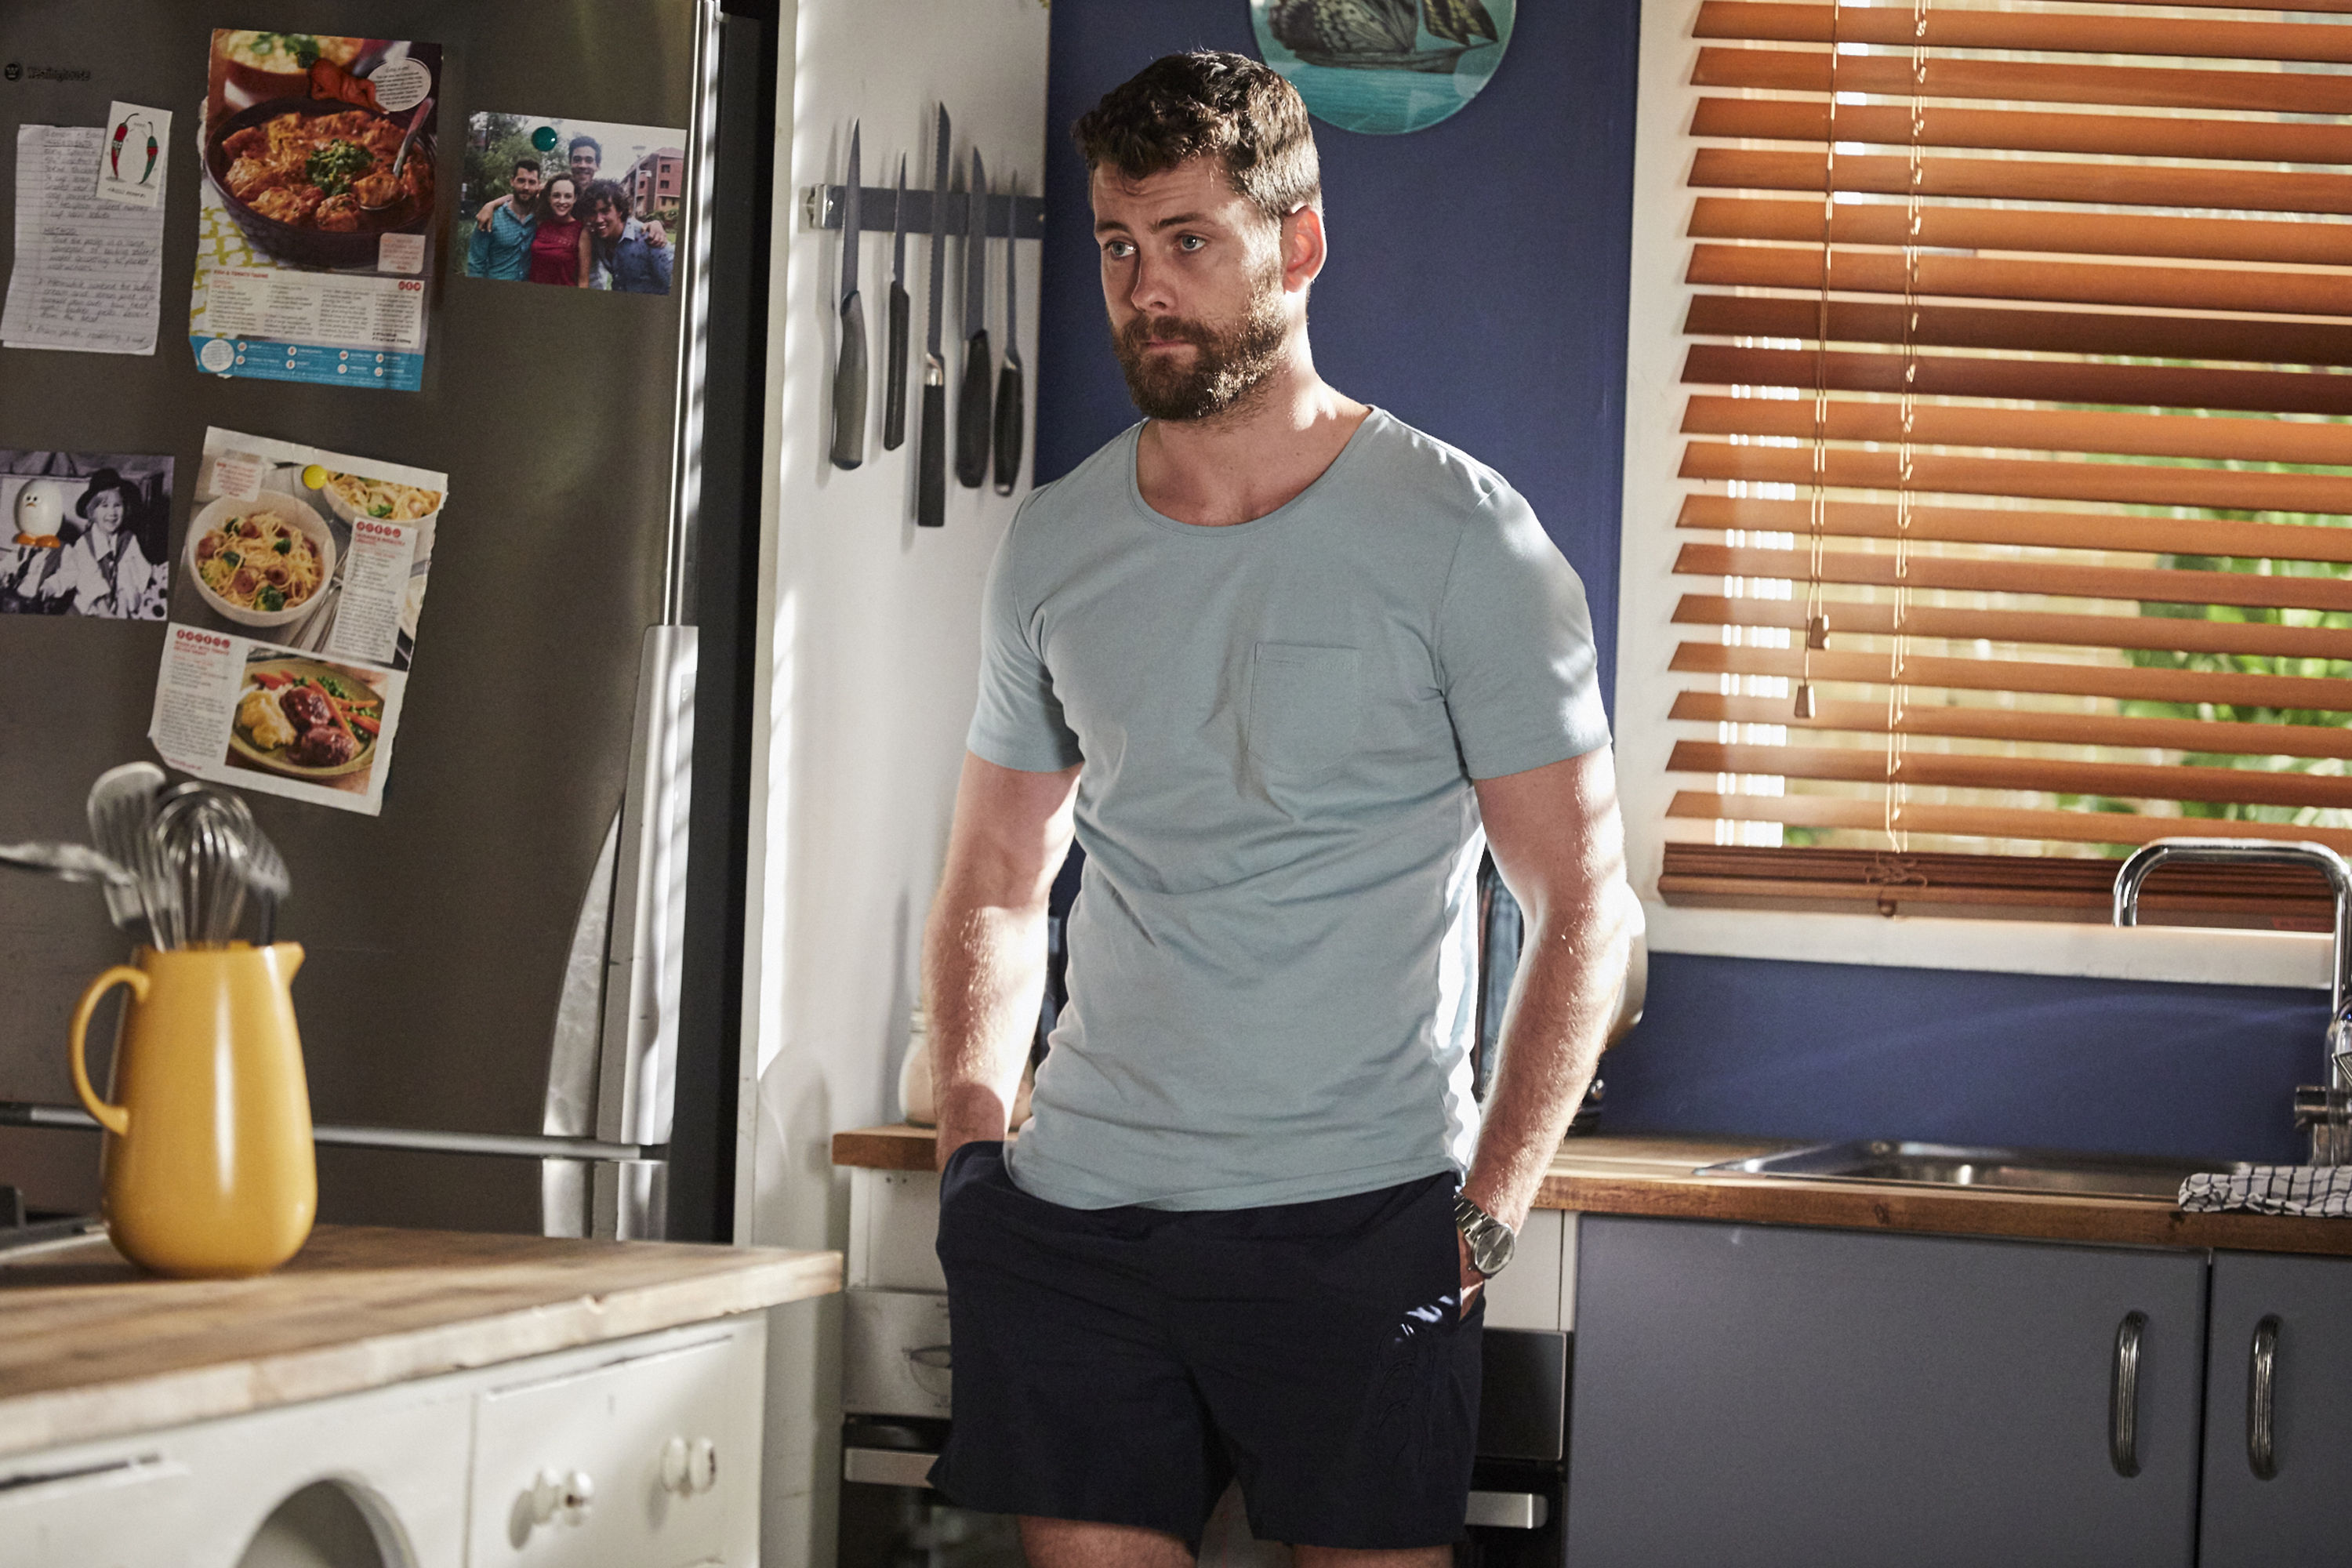 Home and Away spoilers: Has Brody got a crush on Ziggy?